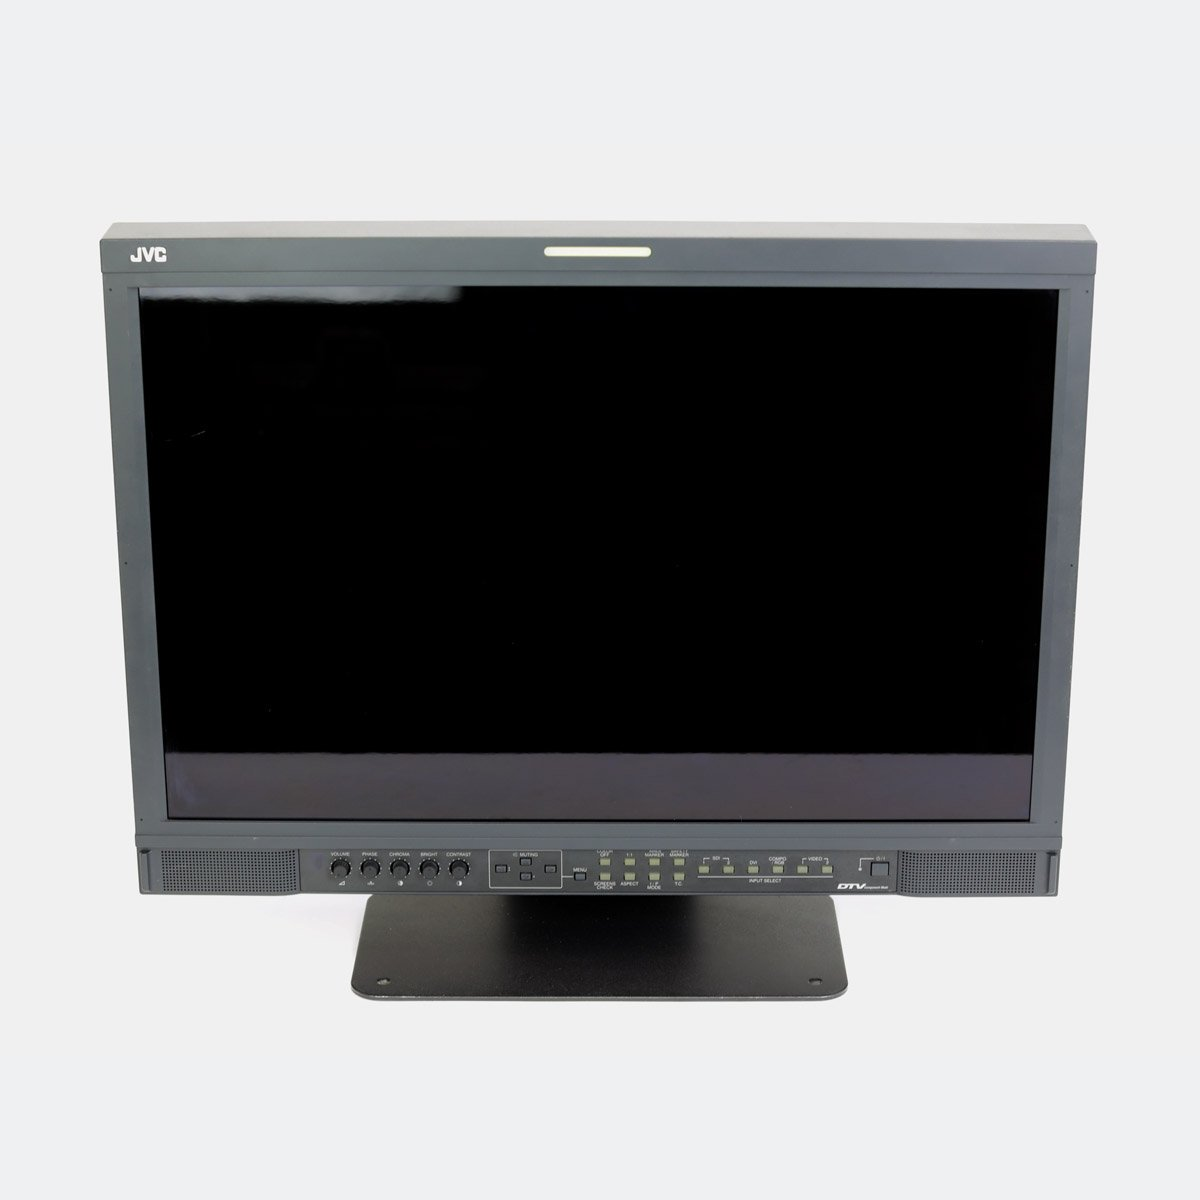 "USED JVC DT-V24L1D 24"" HD LCD MONITOR"